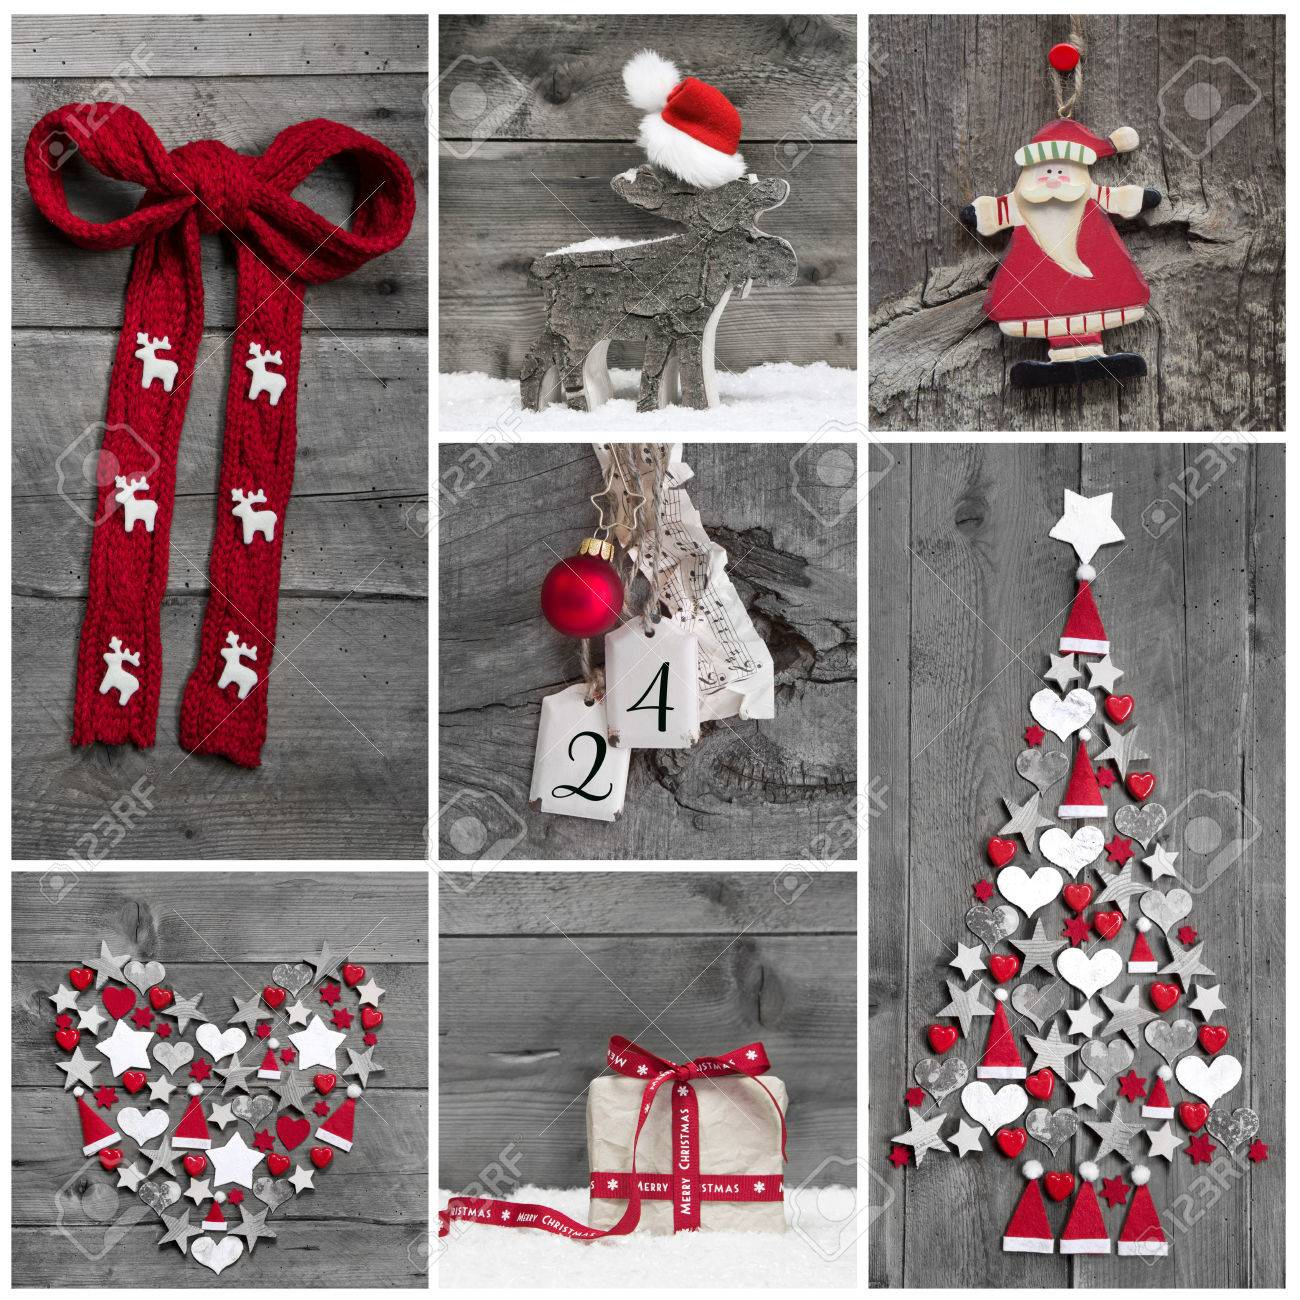 Red and white christmas decorations - Collage Of Different Red White And Grey Christmas Decorations On Wood Stock Photo 30936808